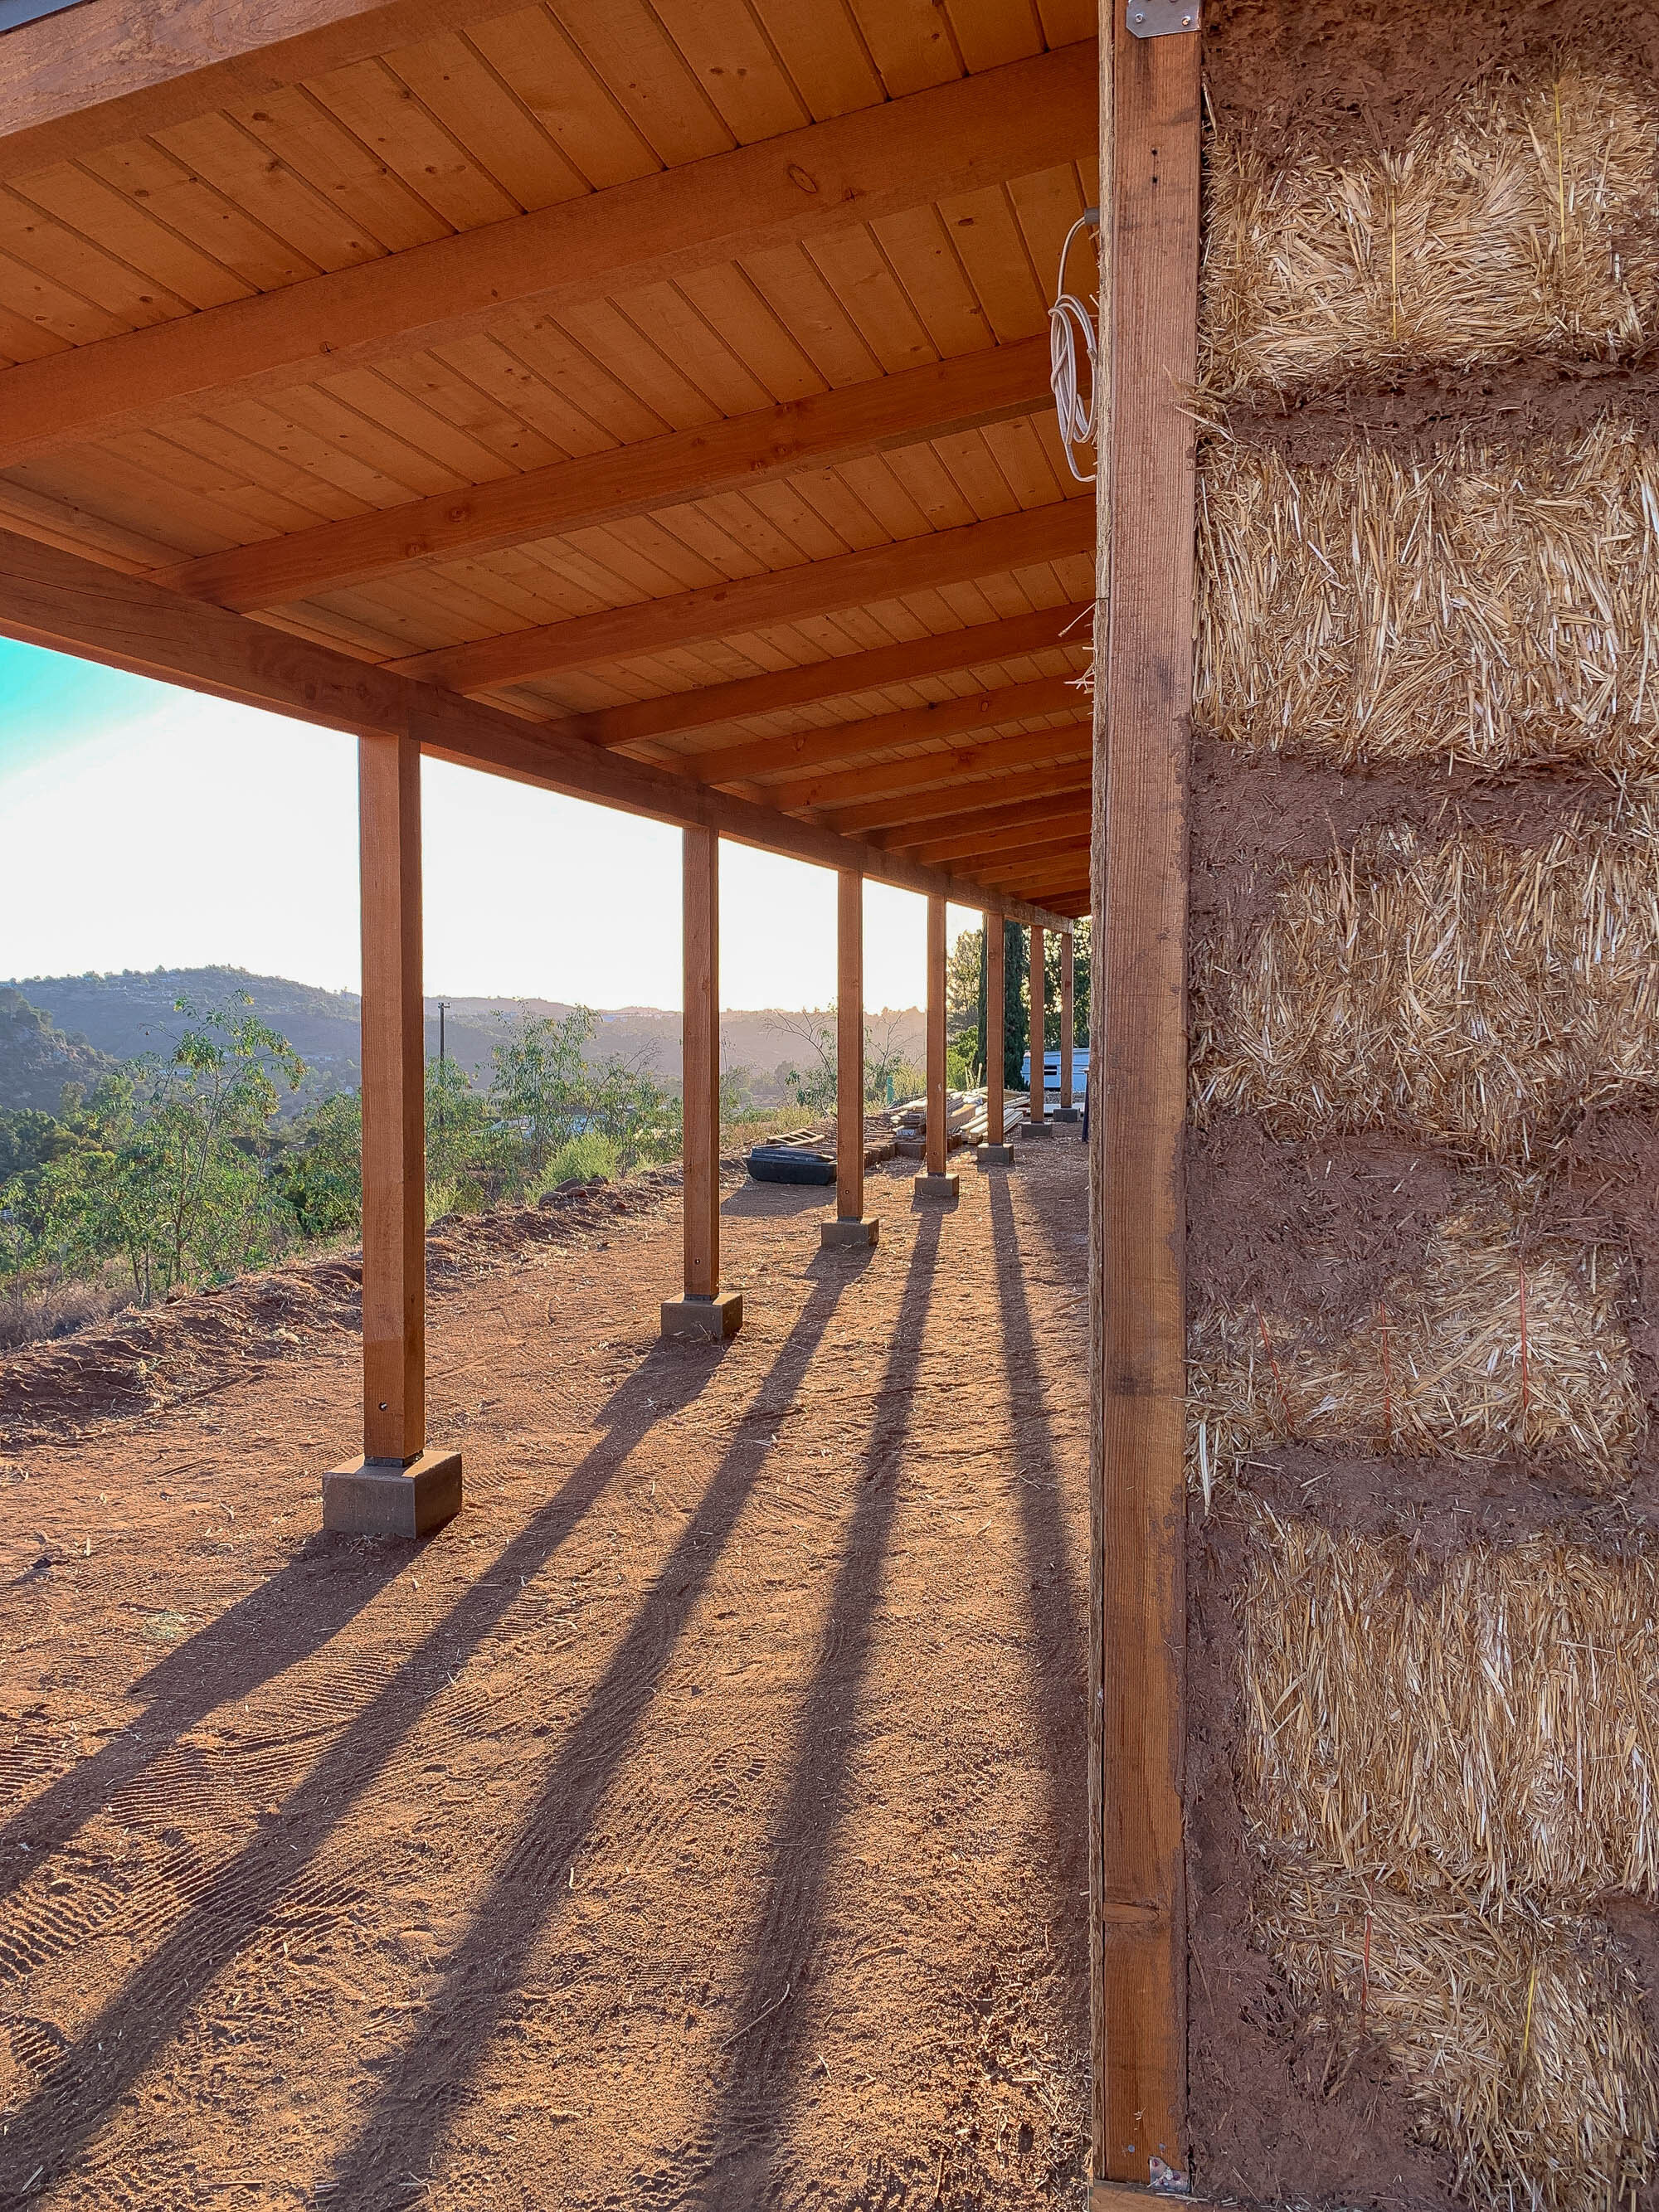 The Gold Hive Straw Bale Construction-9714.jpg